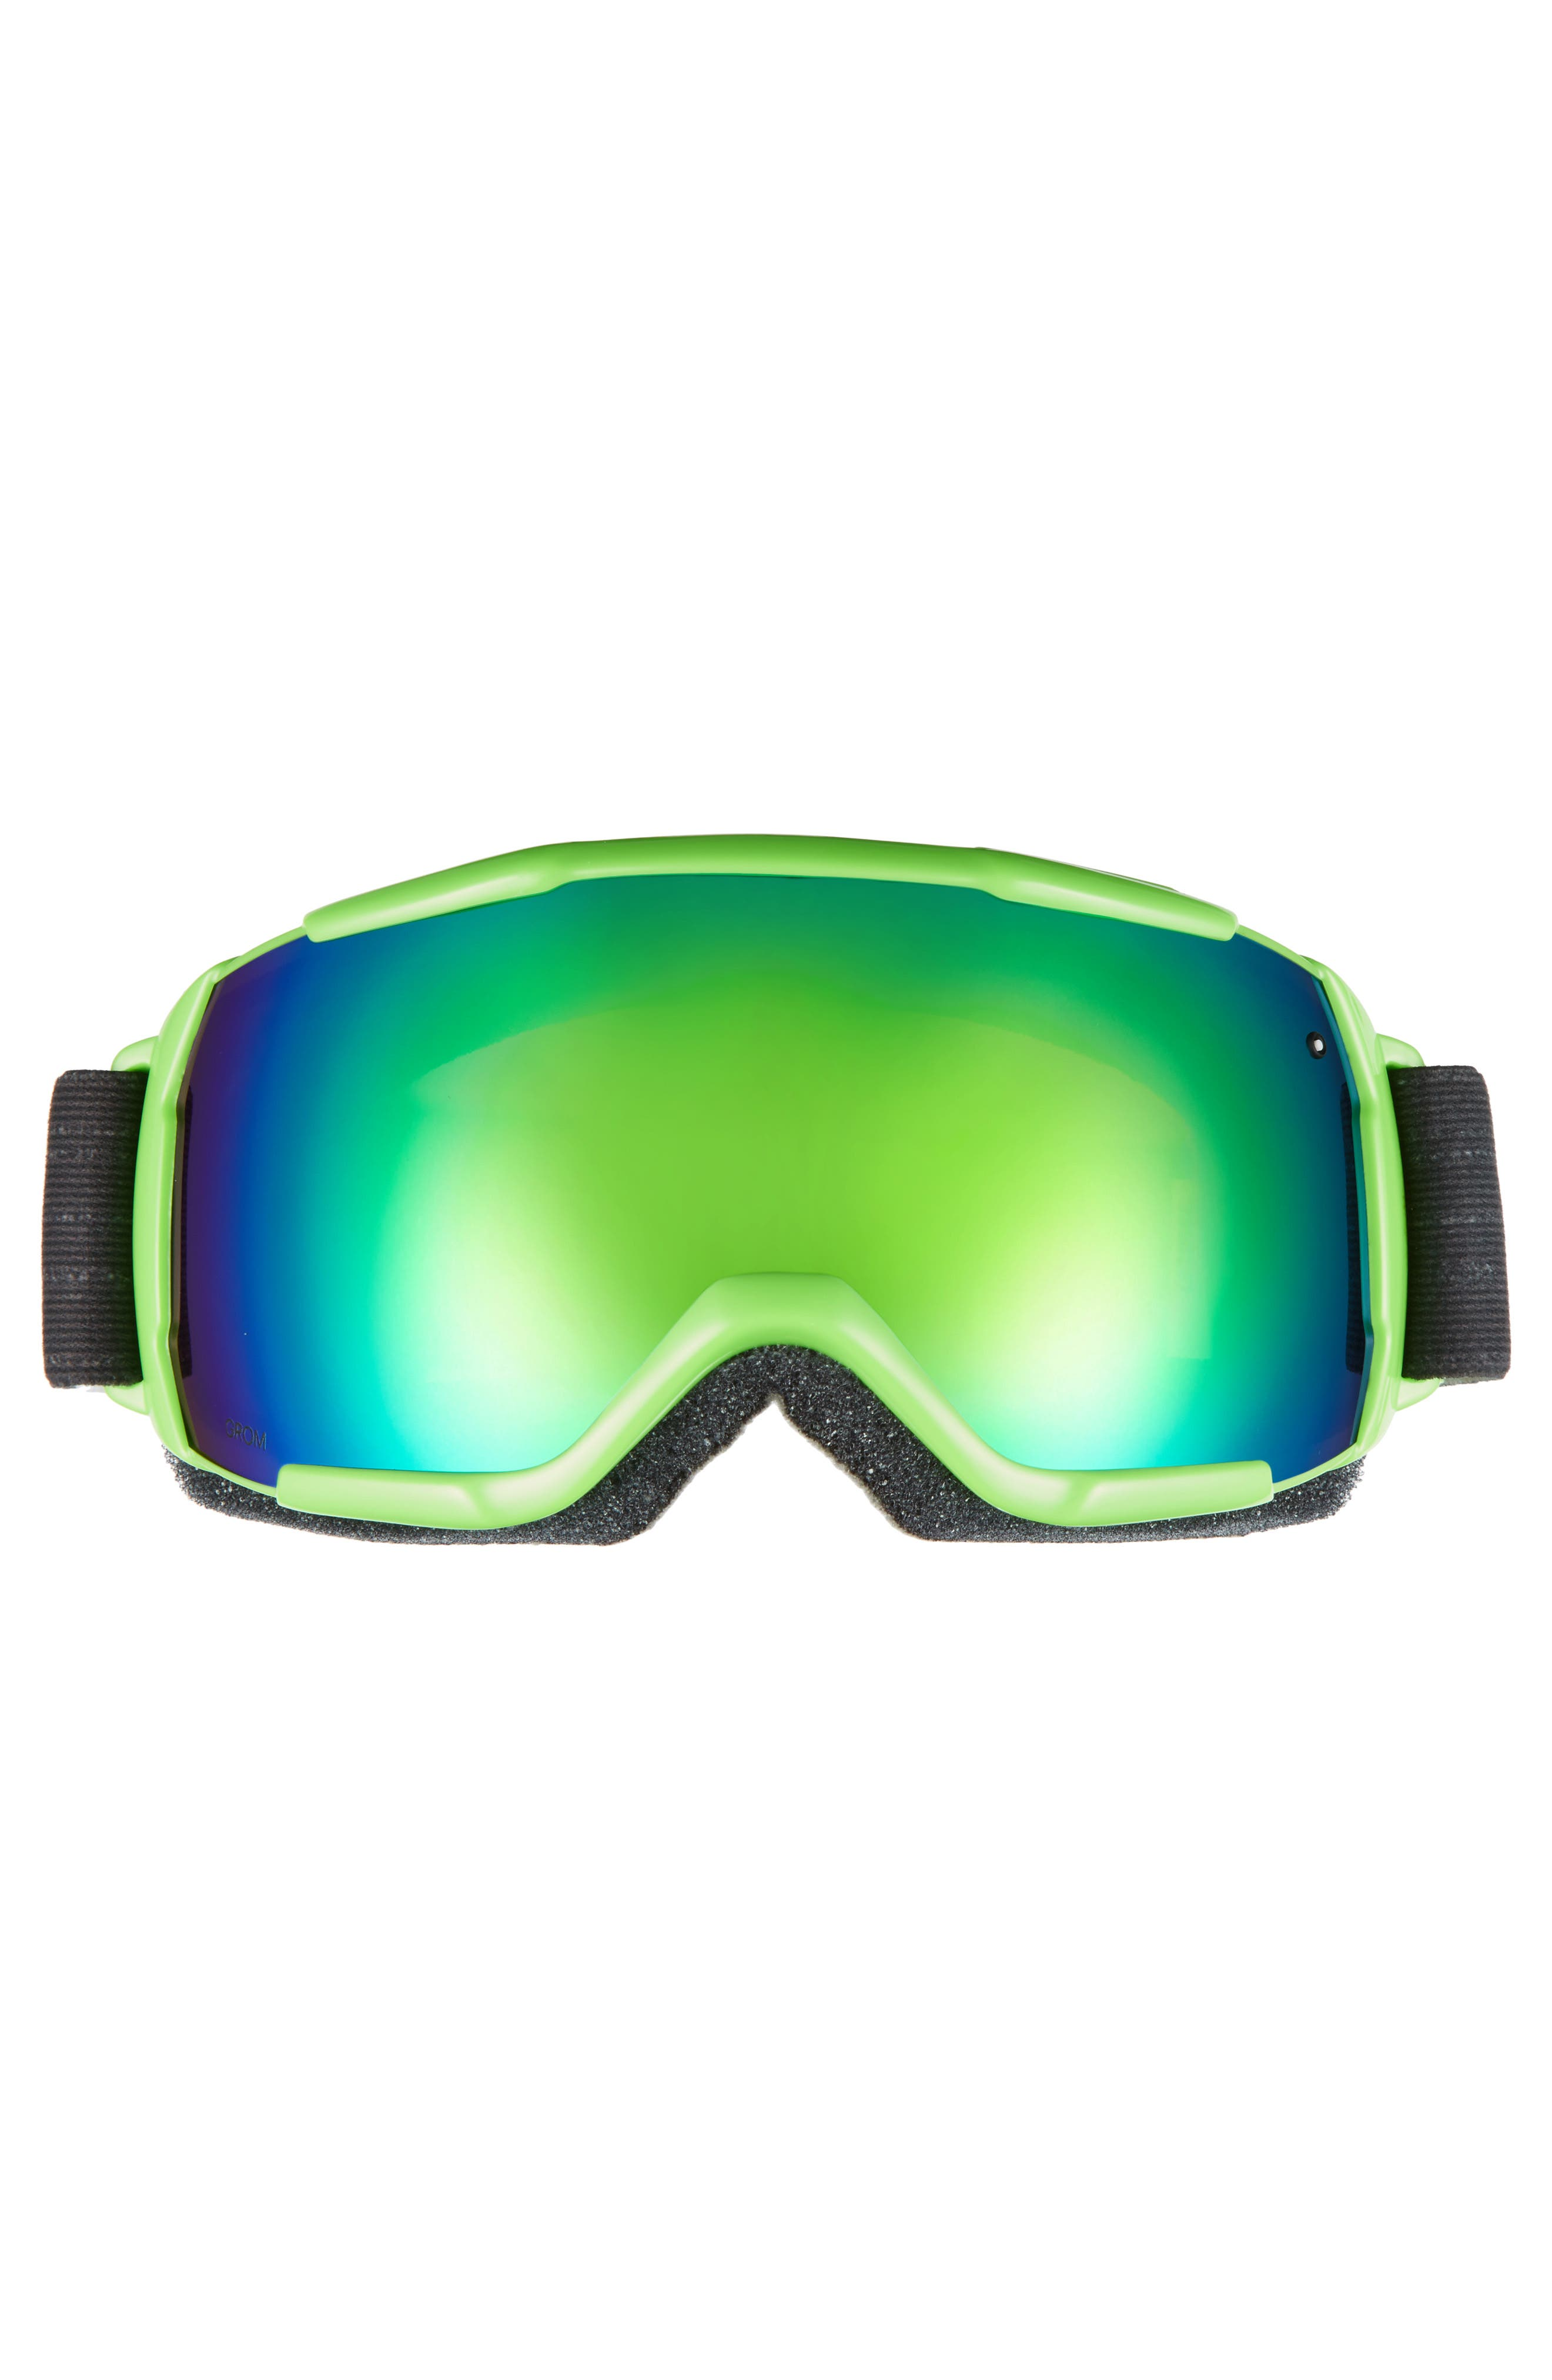 Grom Snow Goggles,                             Alternate thumbnail 11, color,